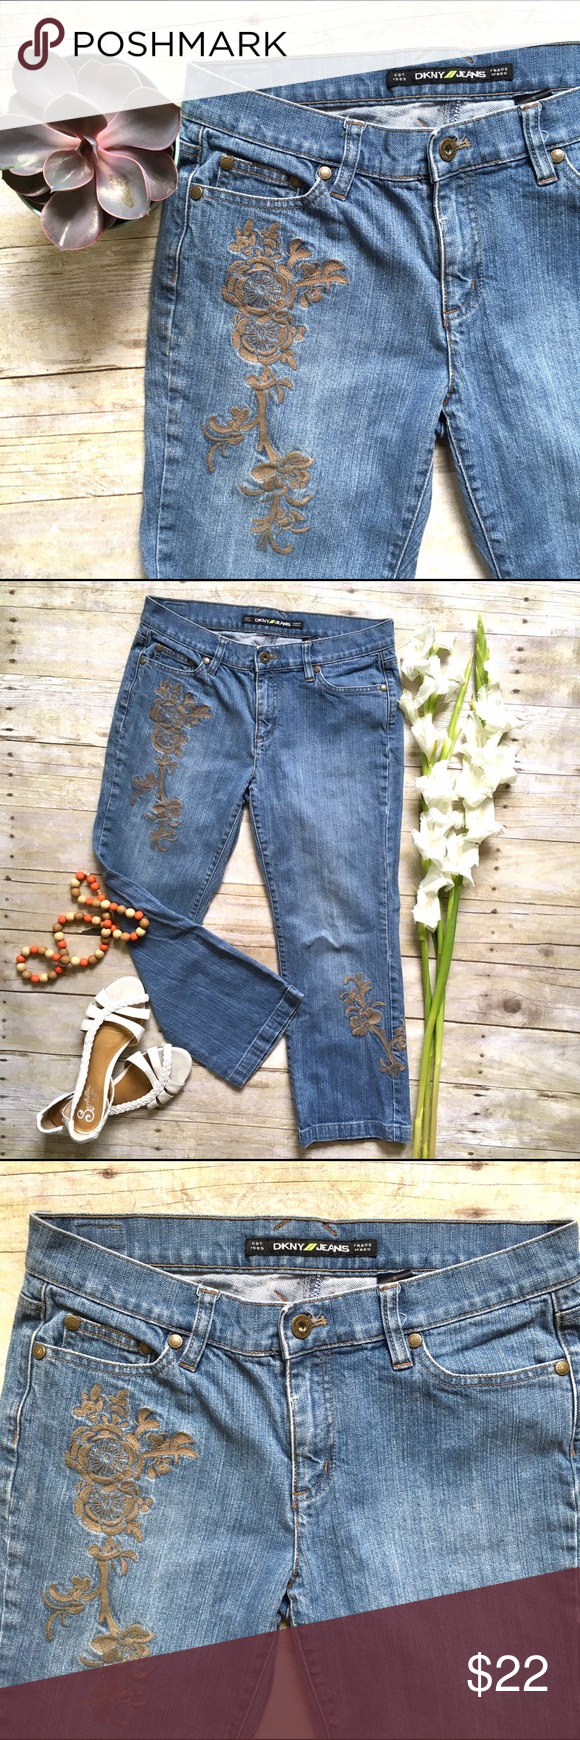 """DKNY embroidered cropped jeans Right on trend, these embroidered jeans are perfect for spring/summer. In excellent condition. 24"""" inseam. 8.5"""" rise. 15"""" waist laying flat. 99/1 cotton, spandex. Size 6. DKNY Jeans Ankle & Cropped"""